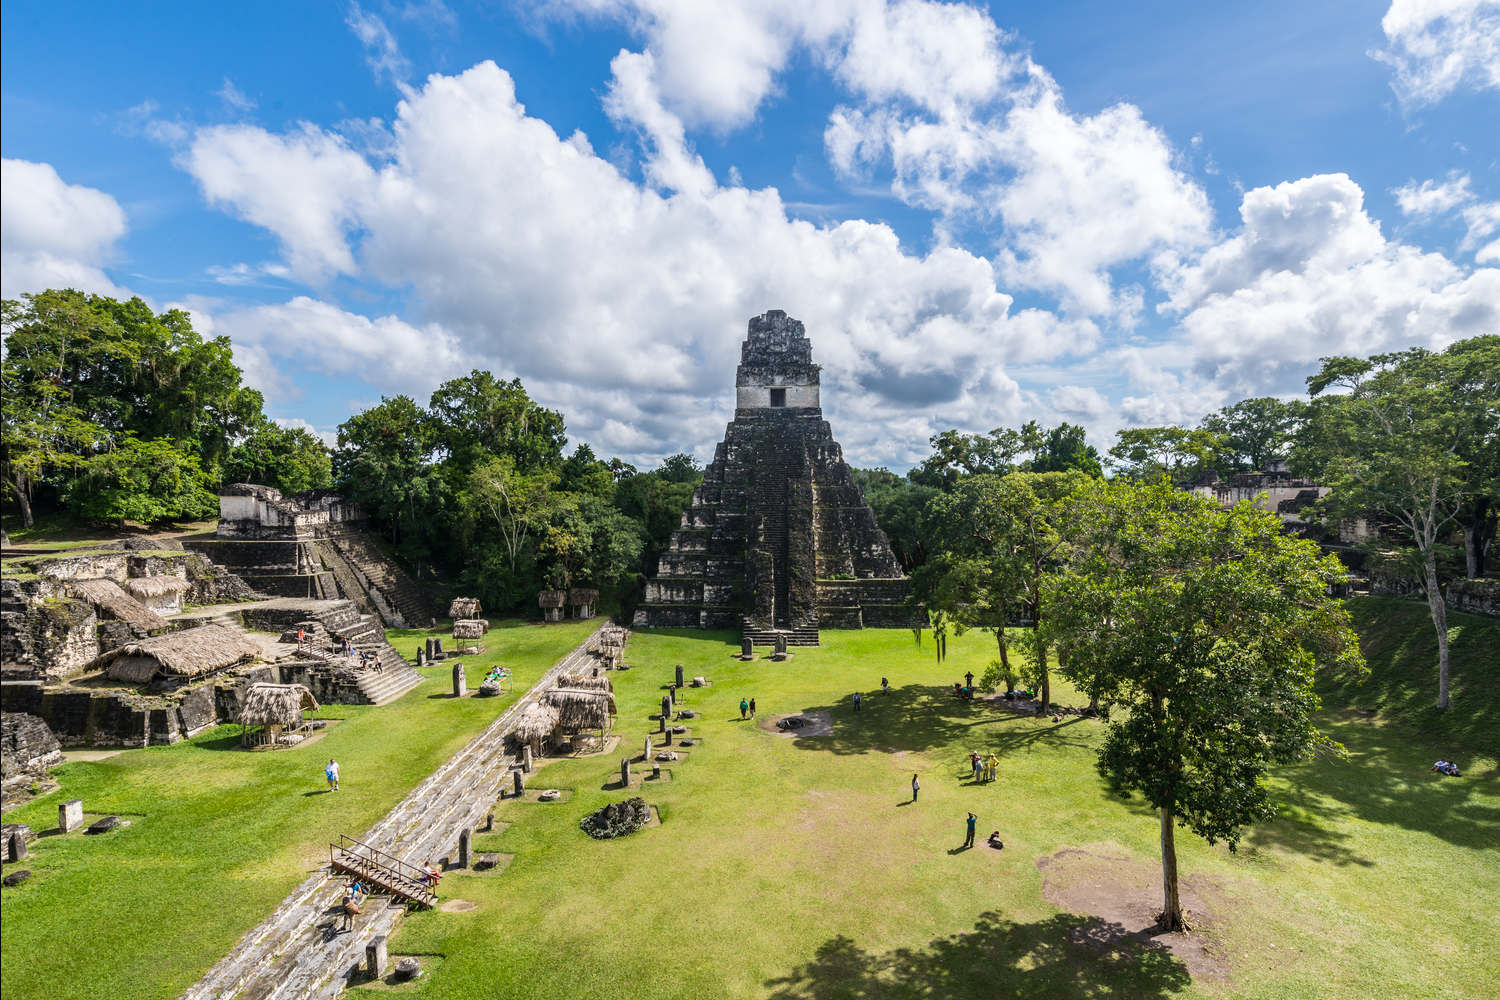 guatemala-tikal-is-one-of-the-largest-archaeological-sites-and-urban-centres-of-the-pre-columbian-maya-civilisation